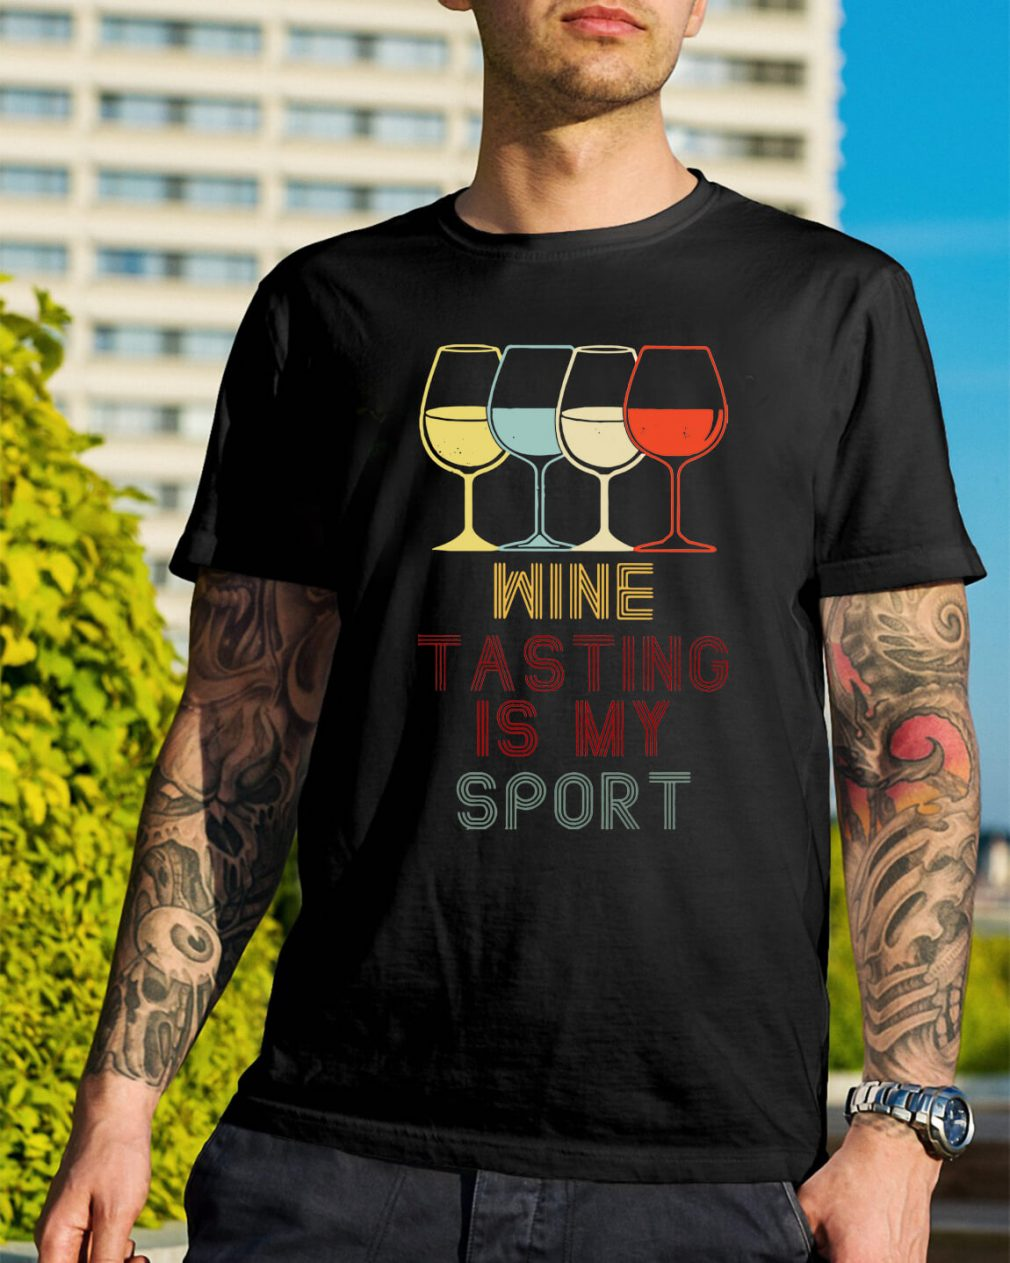 Wine tasting is my sport shirt